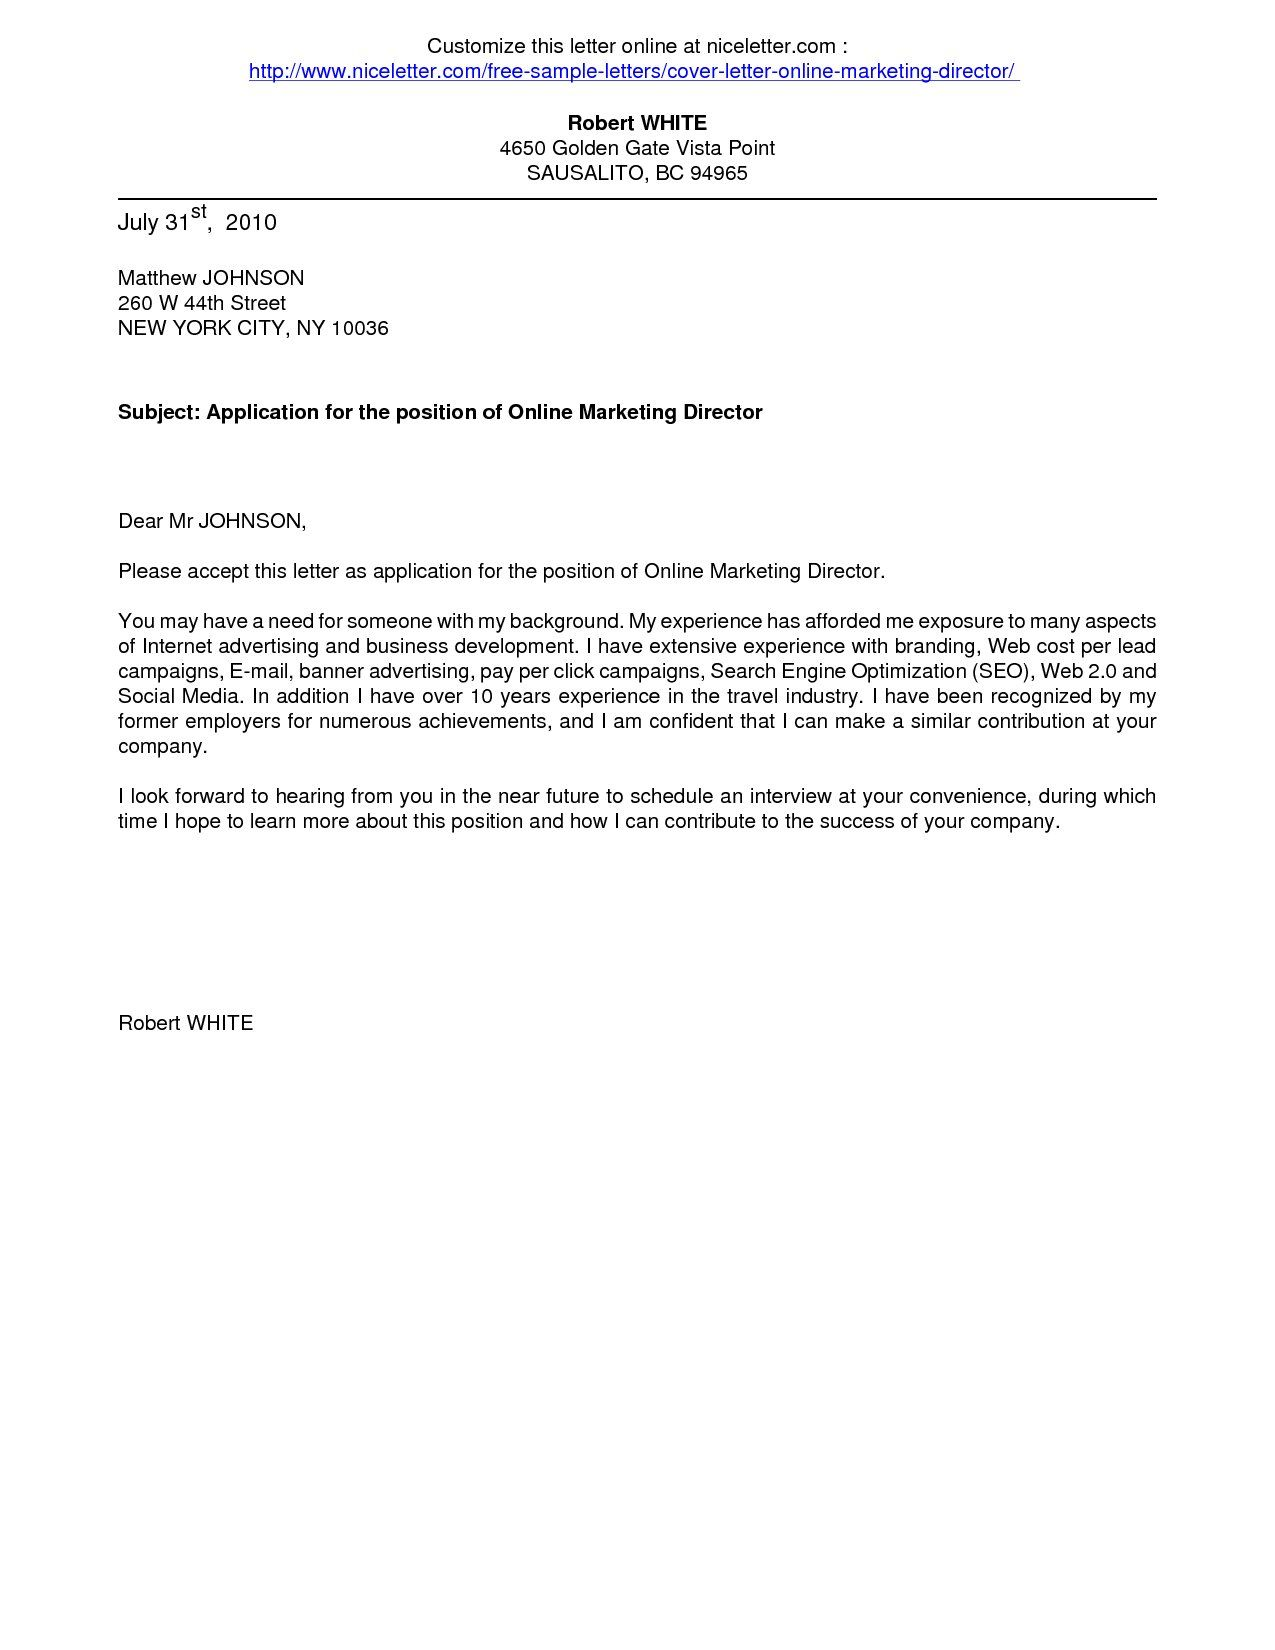 Business Development Cover Letter Cover Letters Cover Letter For Online Application Business